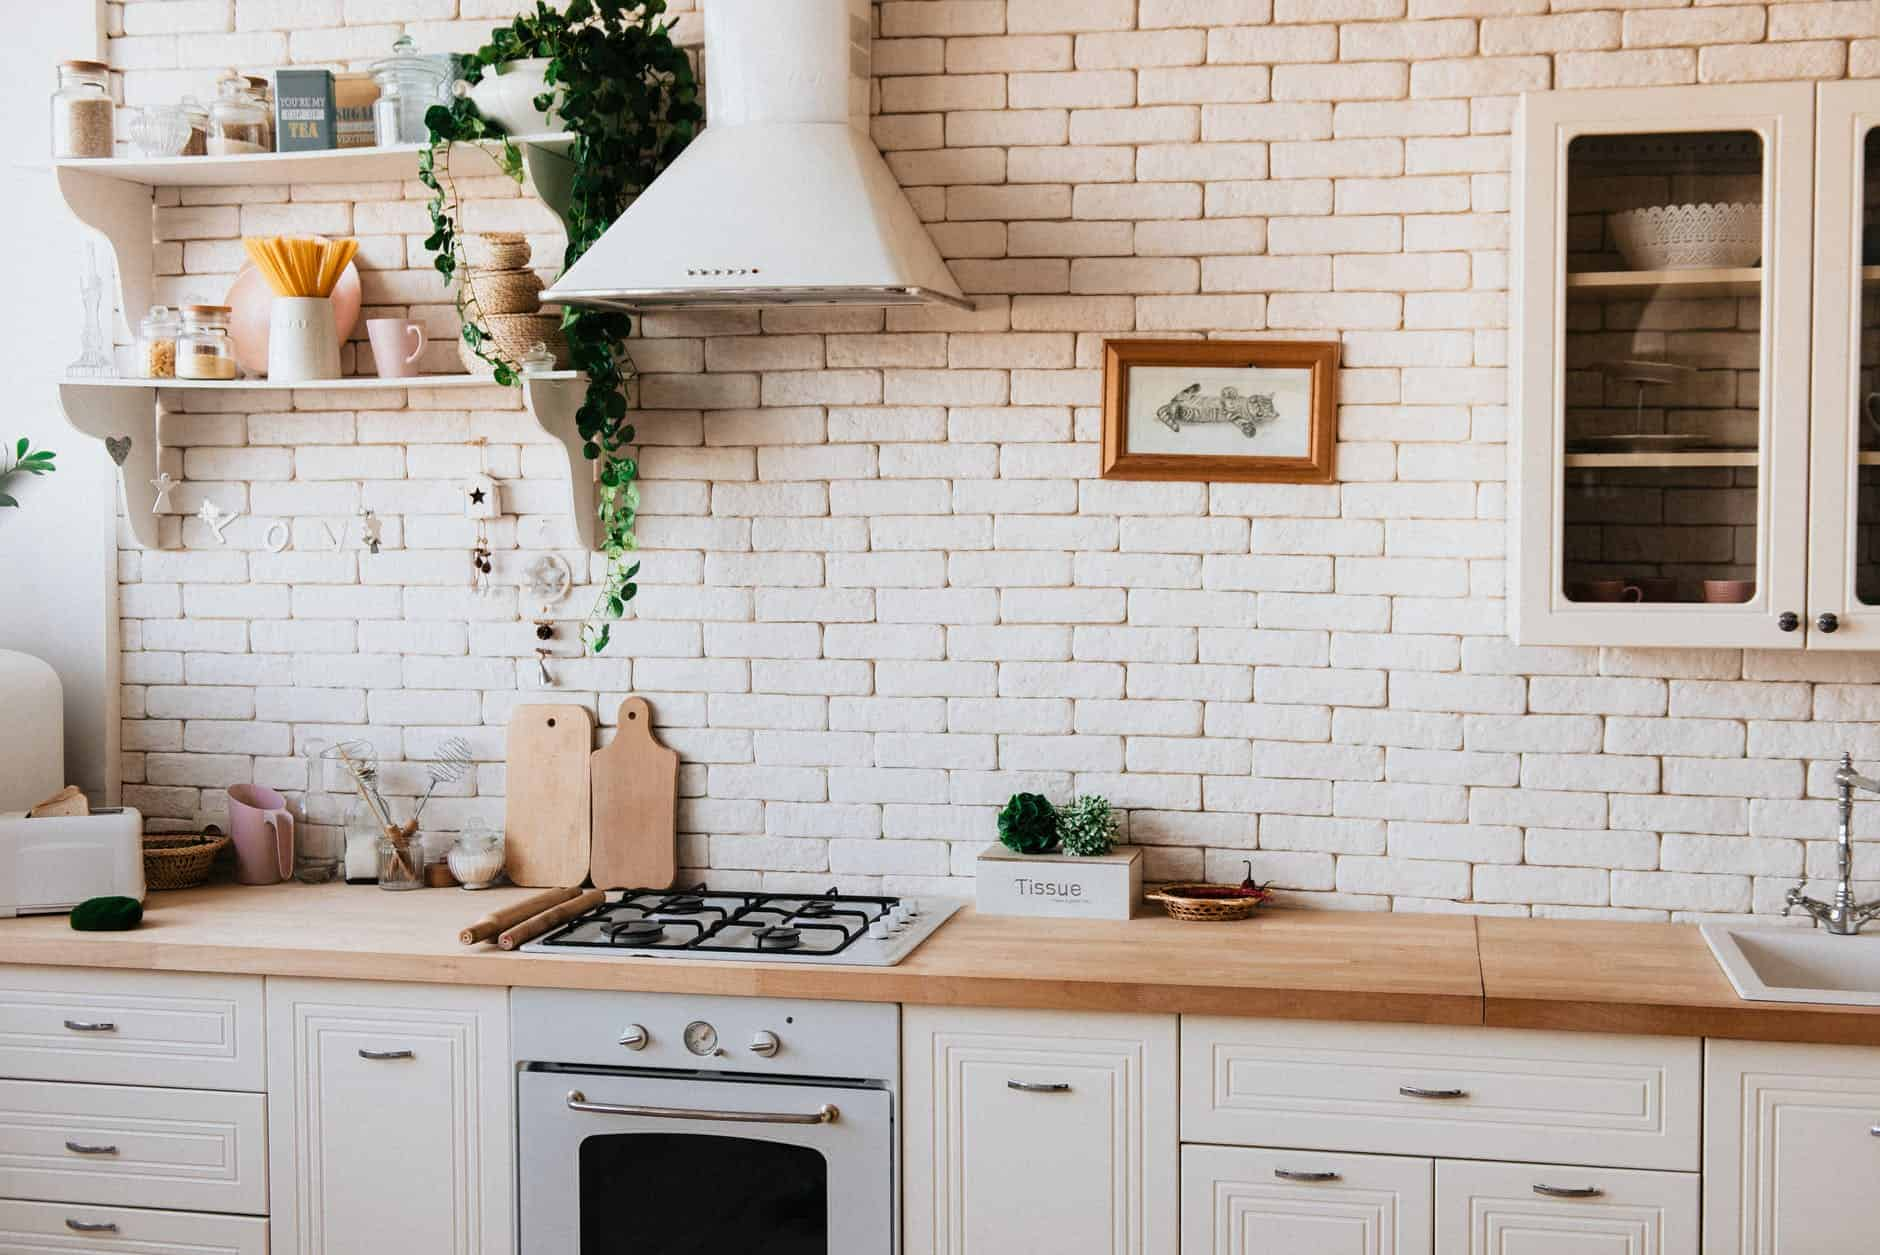 Essential Household Appliances You Need In Your Kitchen